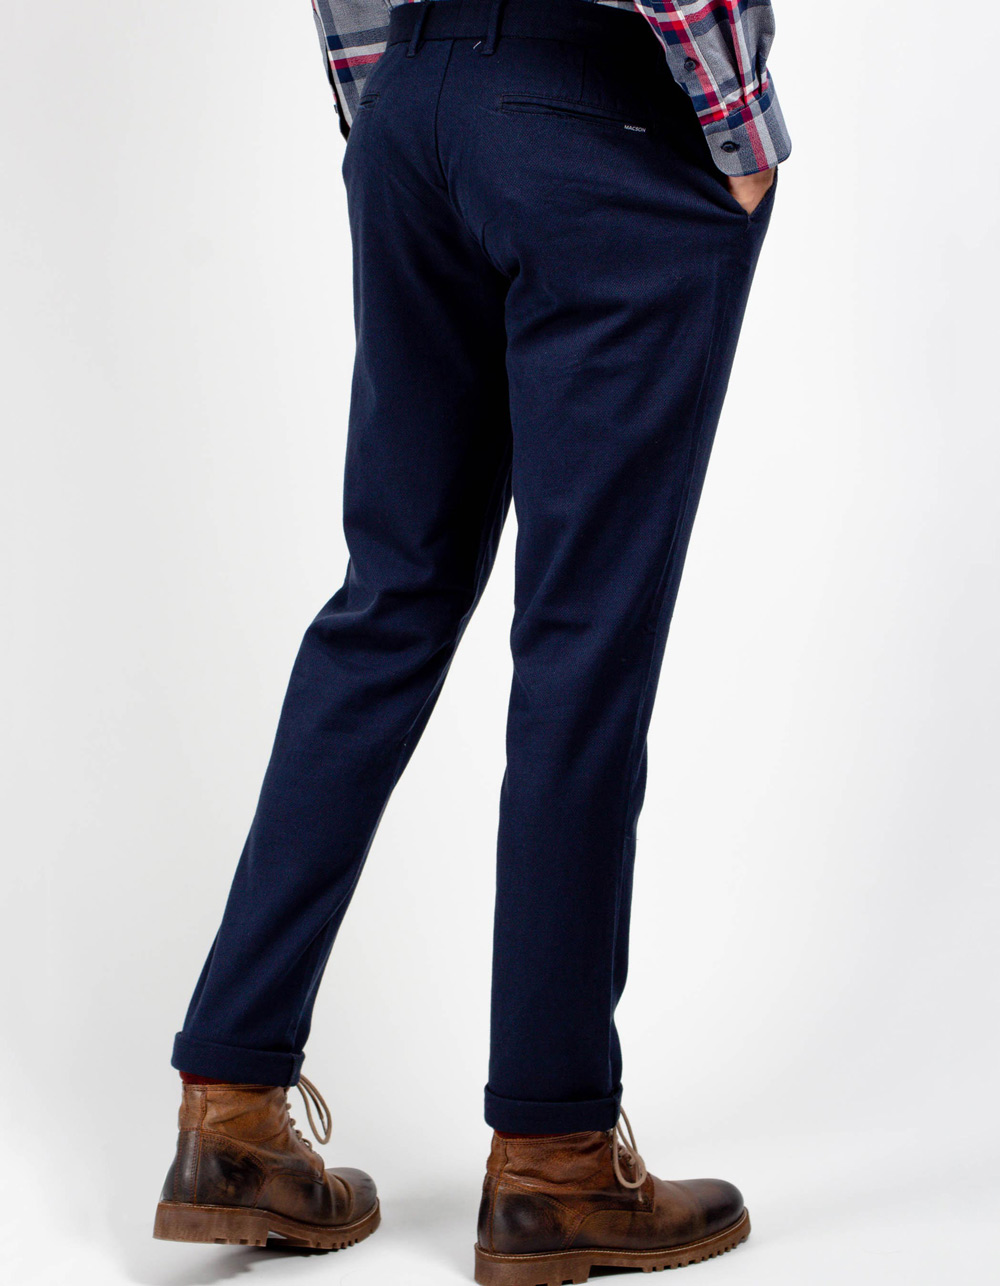 Dress pants with blue microstructure - Backside